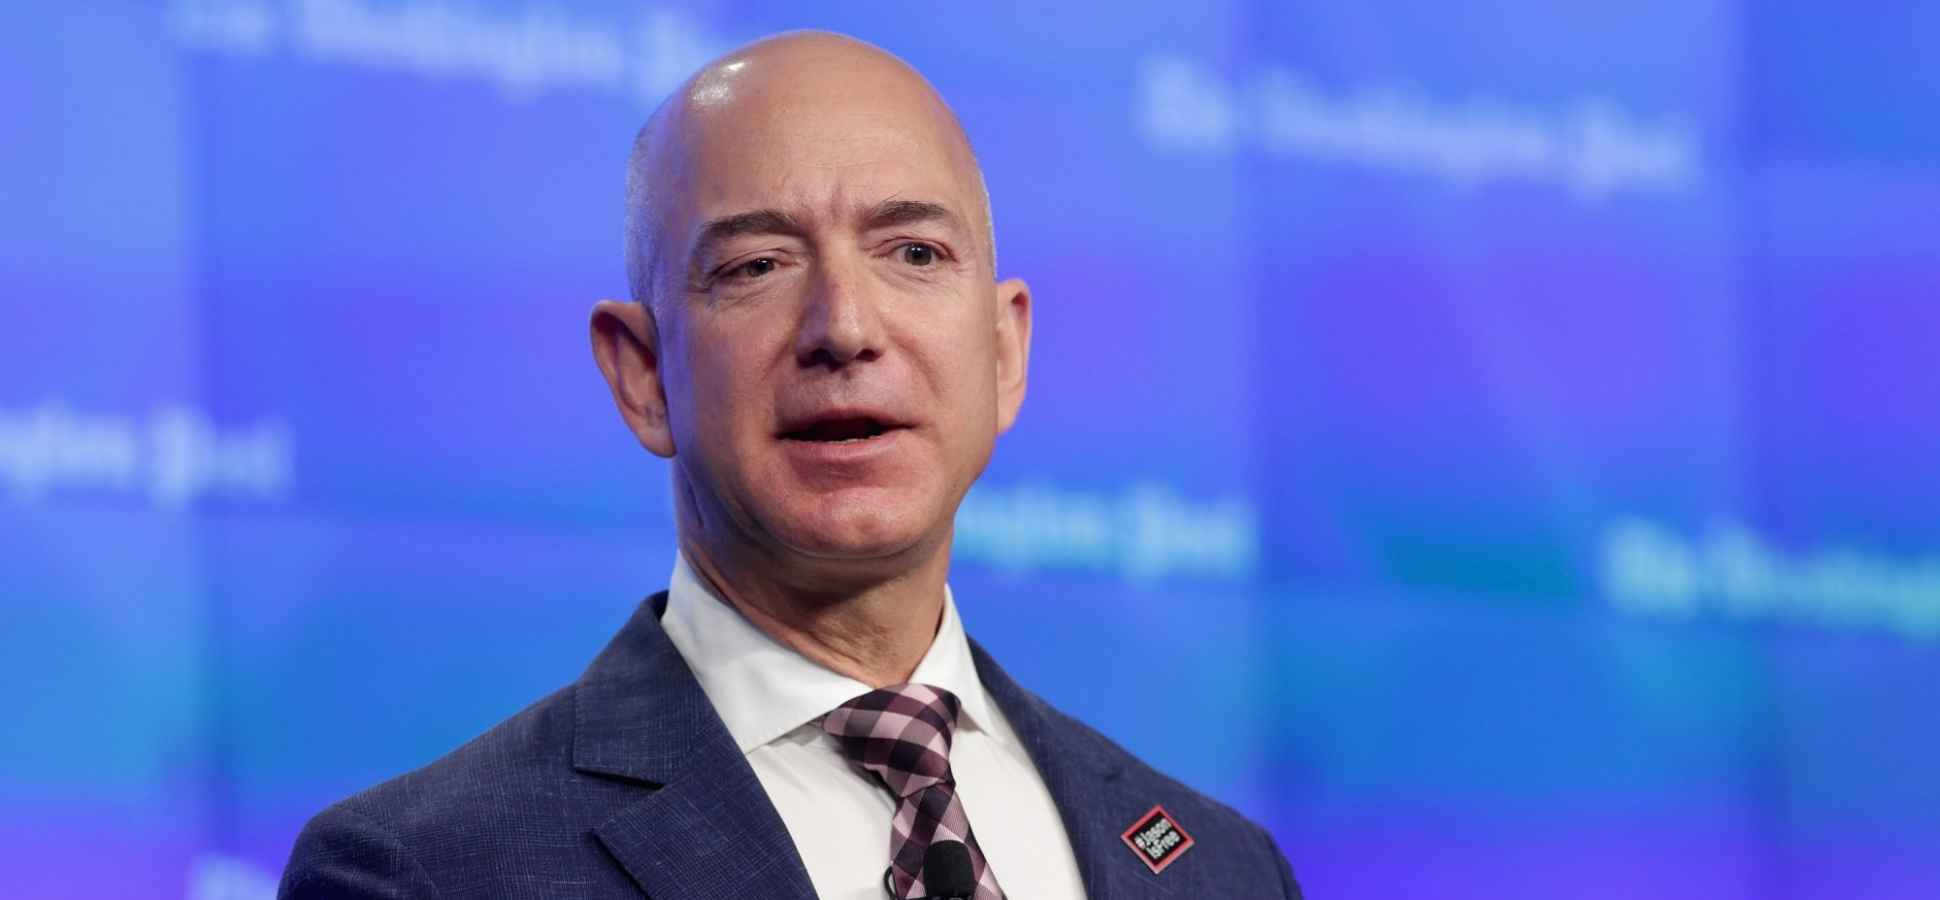 In Just 3 Words, Amazon's Jeff Bezos Taught a Brilliant Lesson in Leadership